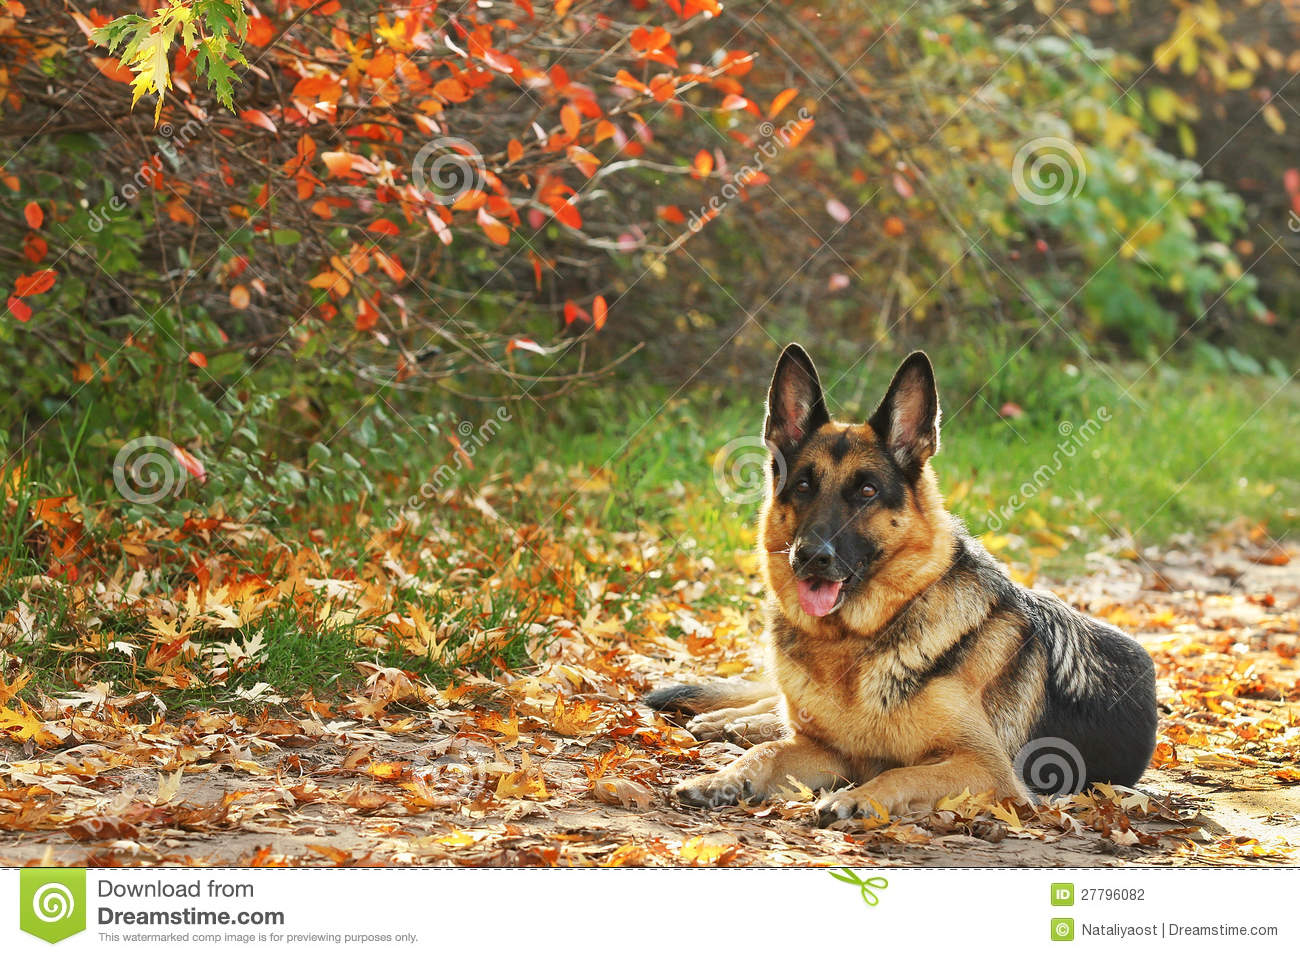 Dog in yellow, red leaves